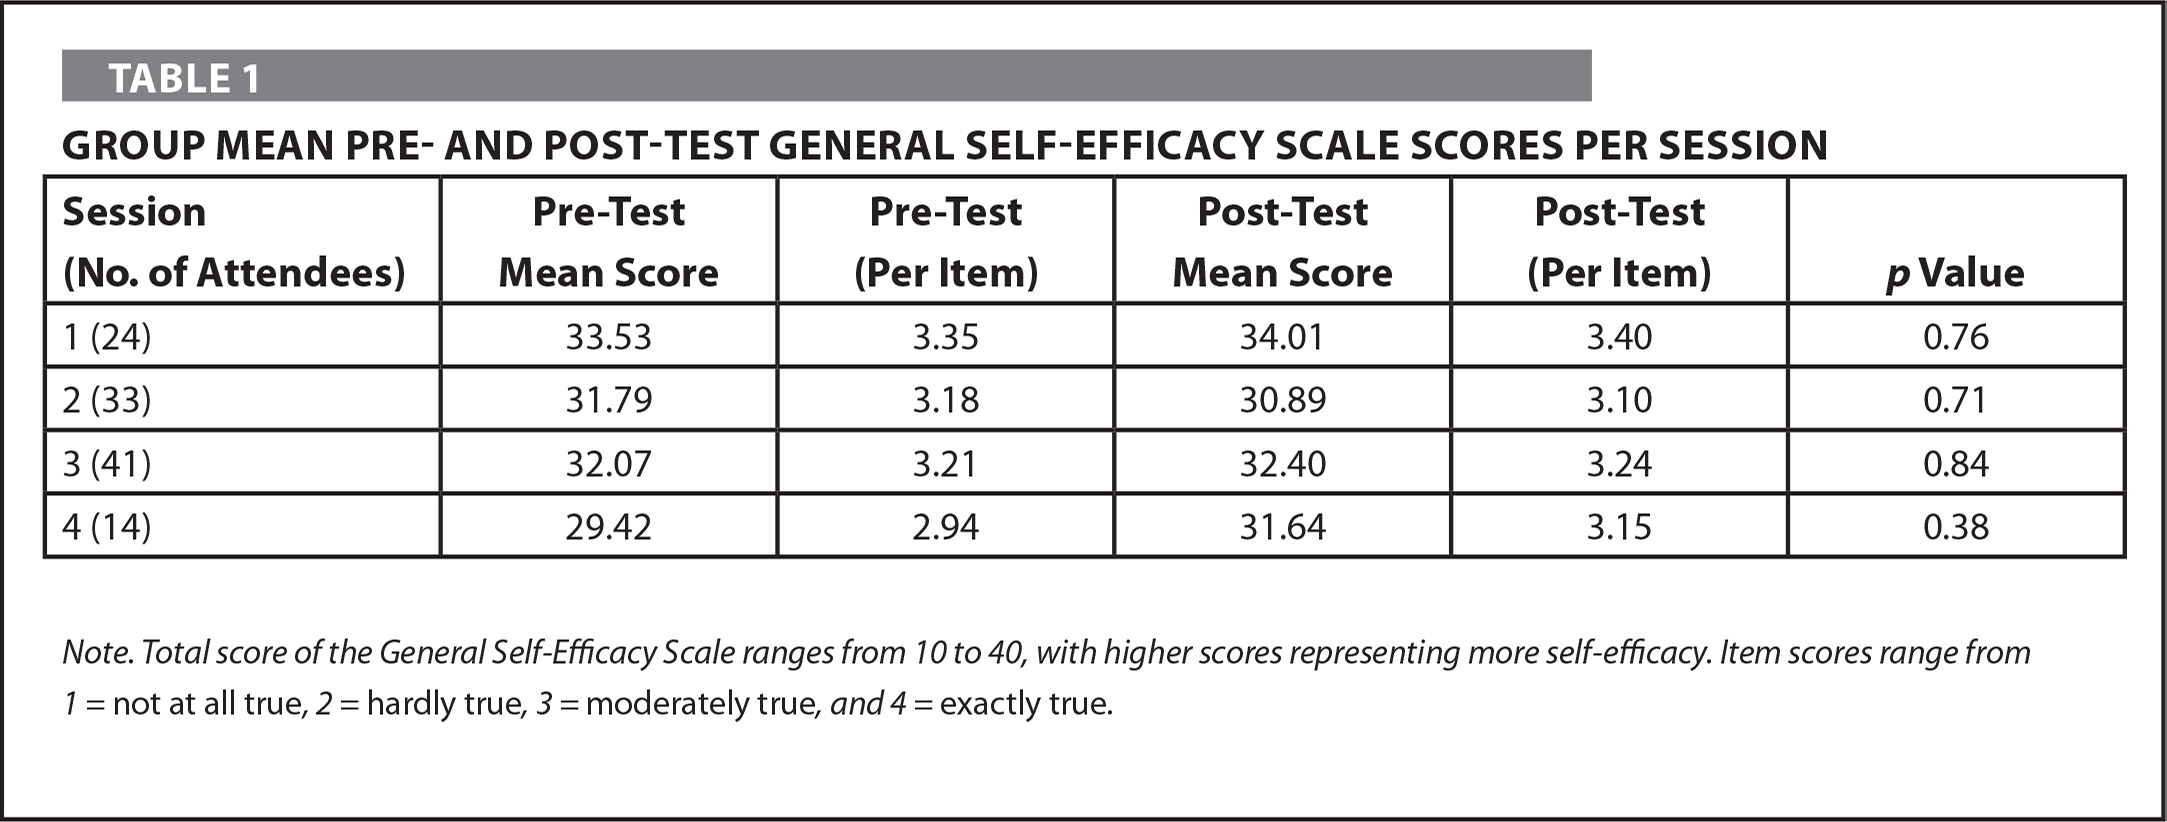 Group Mean Pre- and Post-Test General Self-Efficacy Scale Scores Per Session